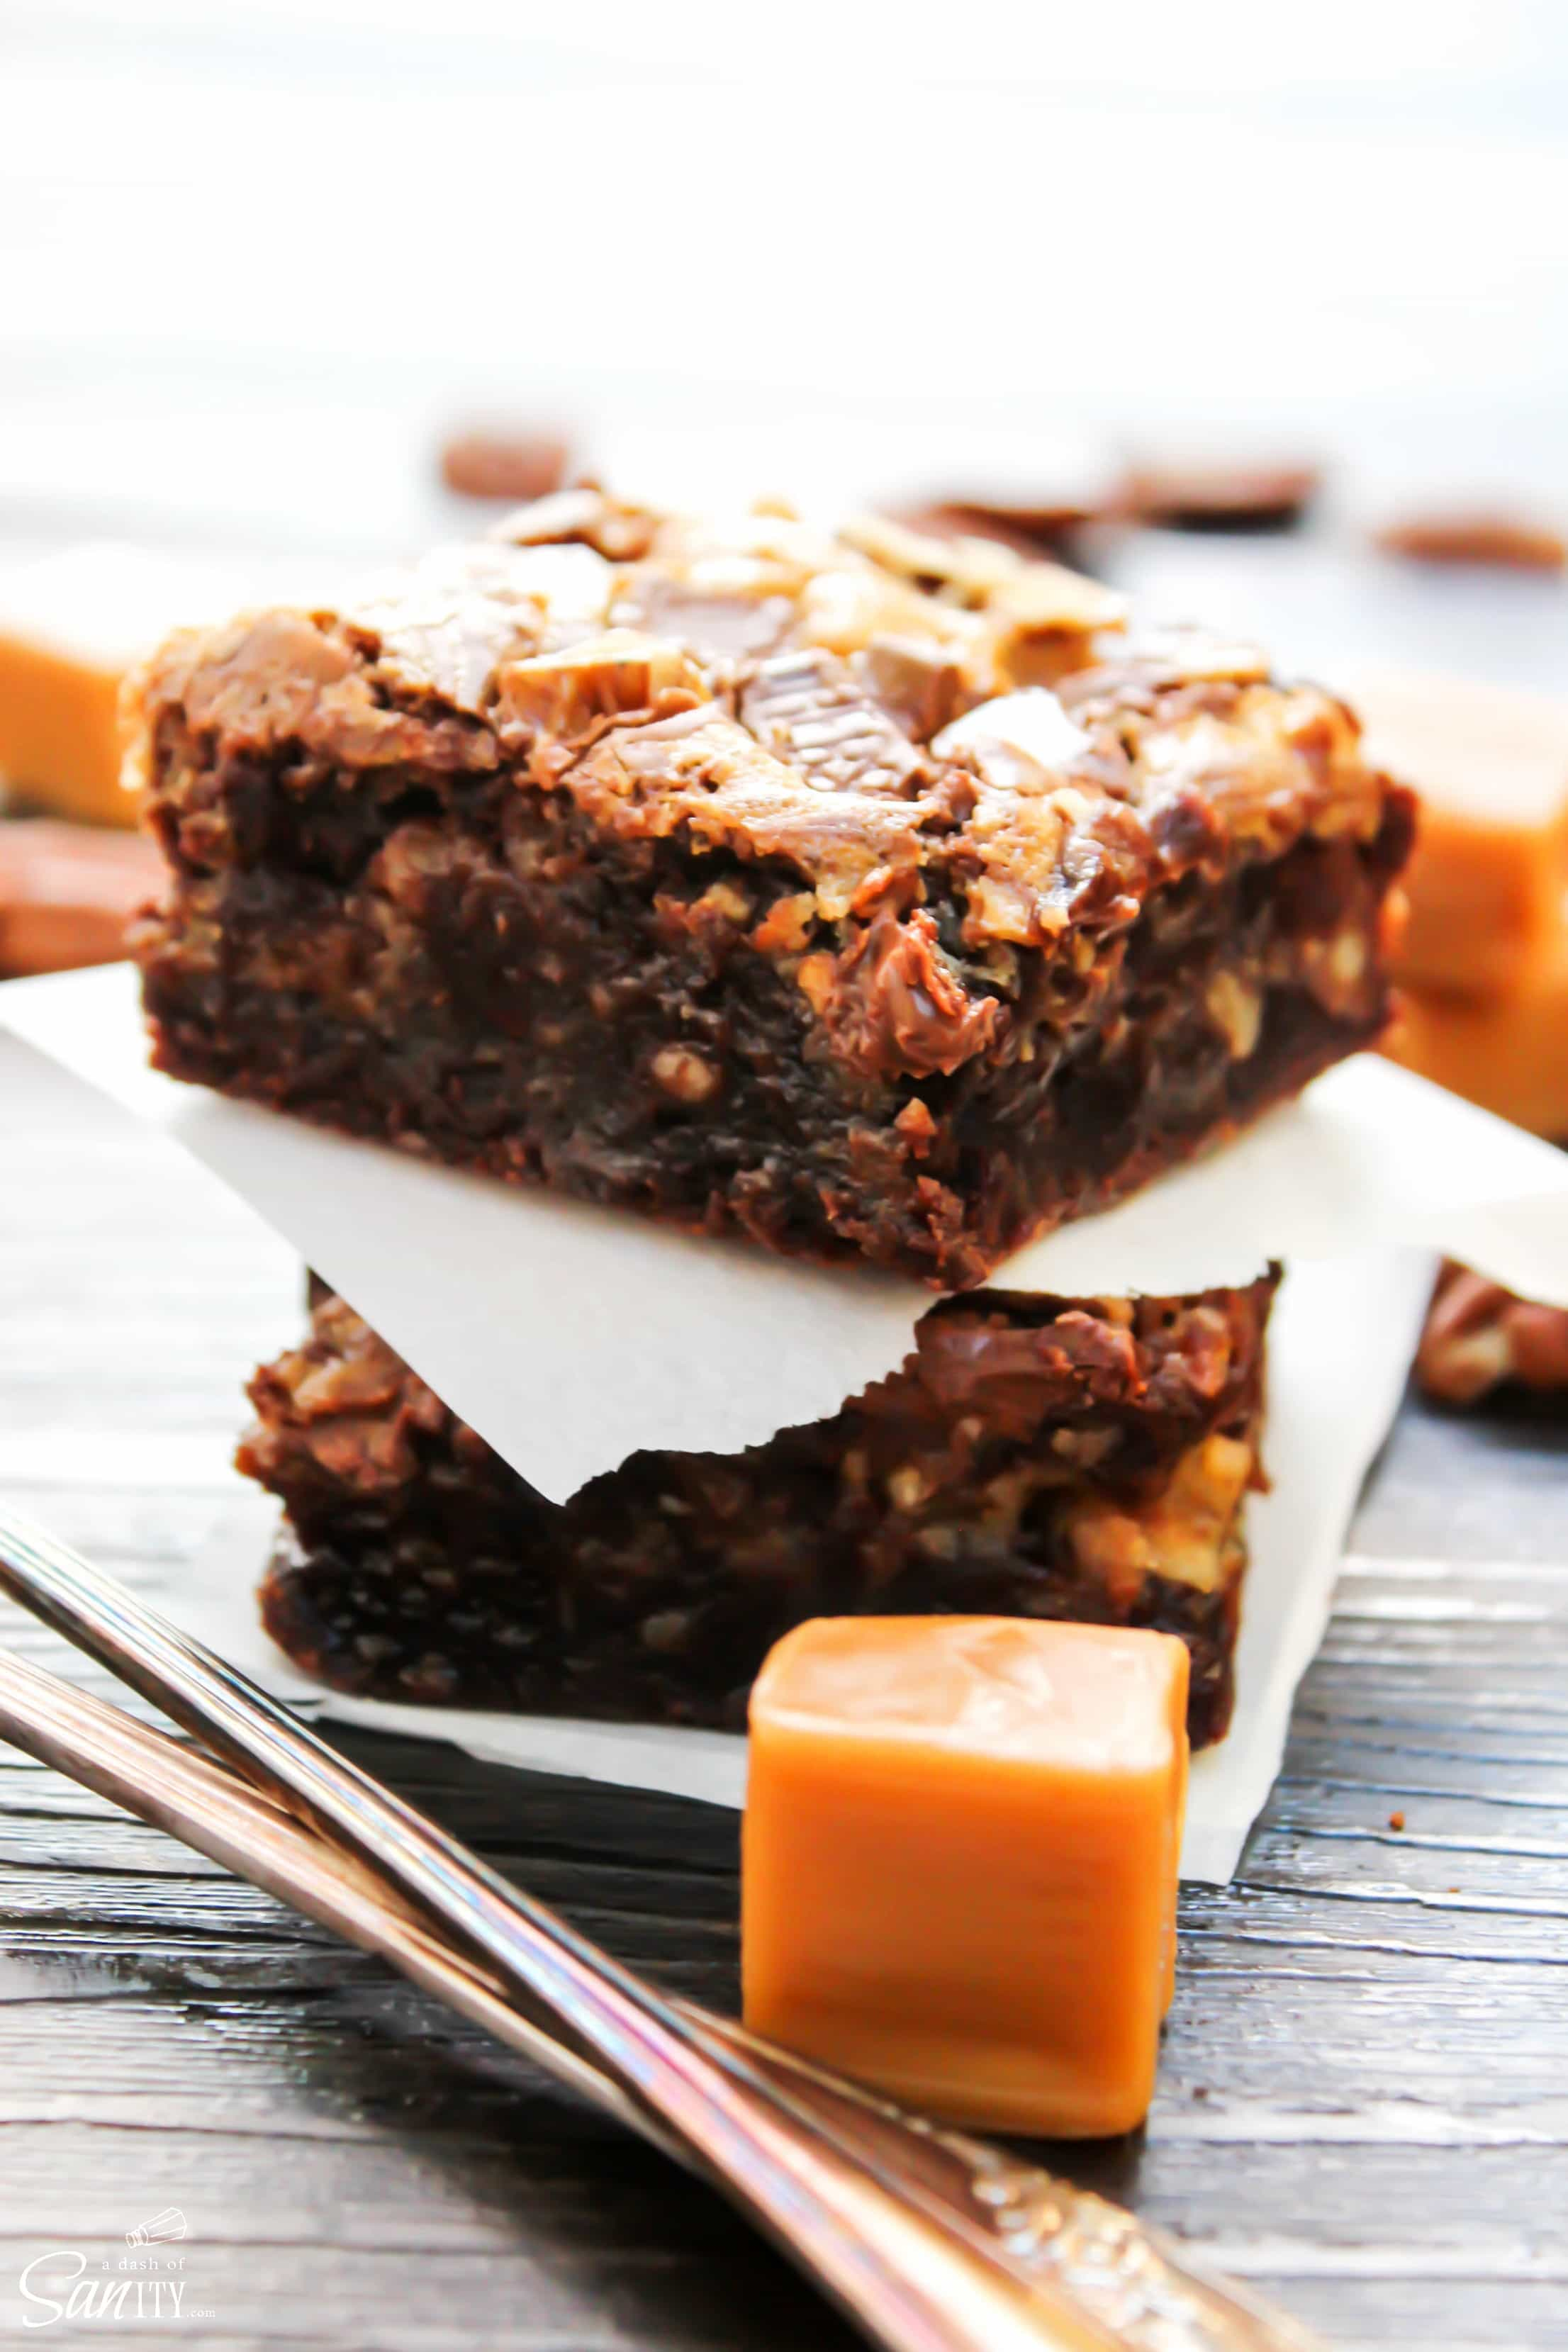 Turtle Cheesecake Fudge Brownies are rich fudge brownies with a caramel cheesecake swirl, topped with chopped pecans. #Spreadcheer with this decadent treat.